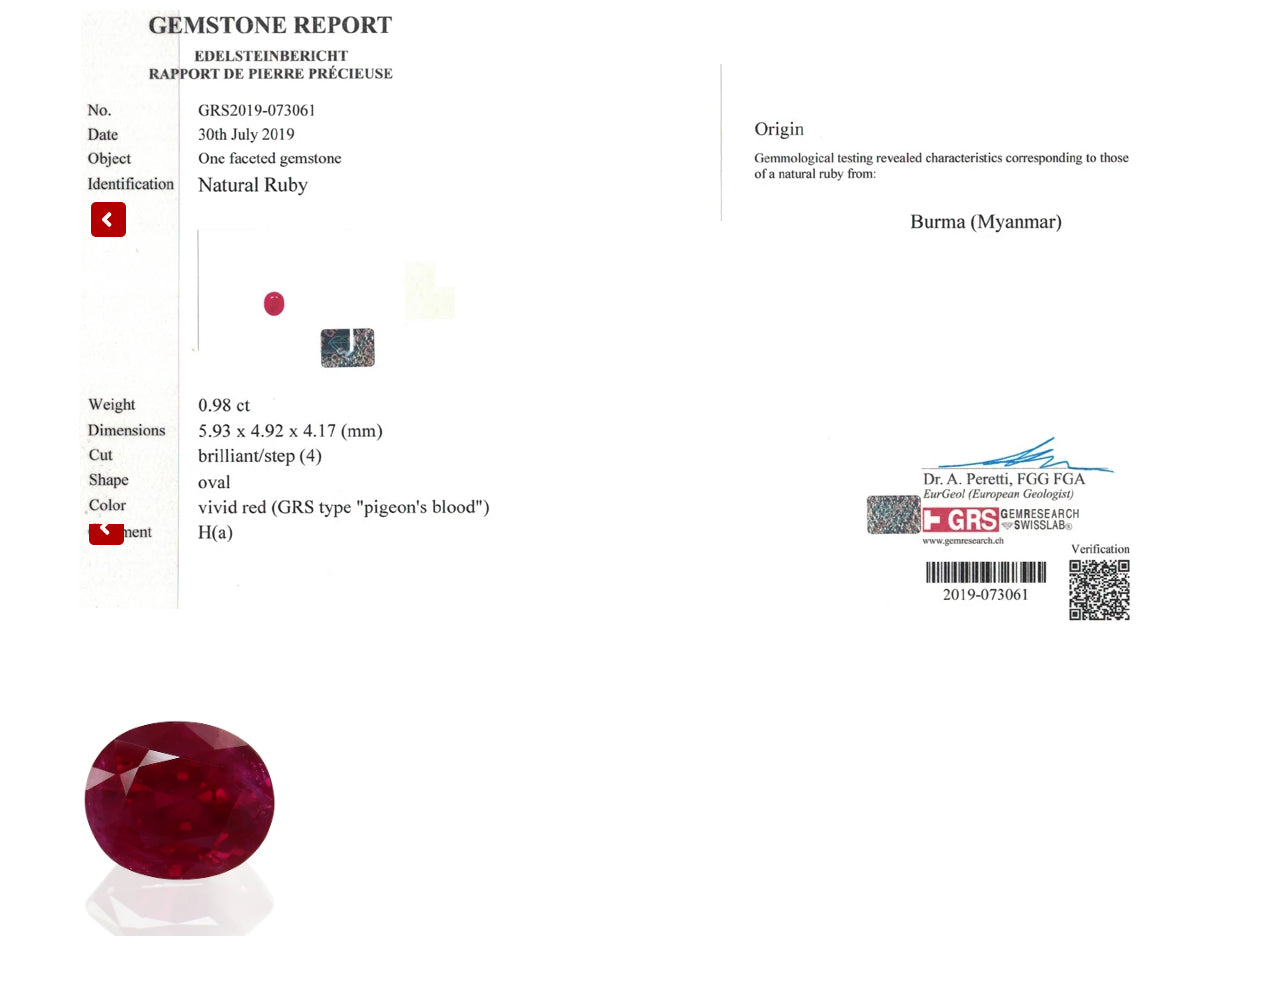 18 Karat Gold Cocktail Ring, GRS Certified Pigeon's Blood Ruby and Sapphires